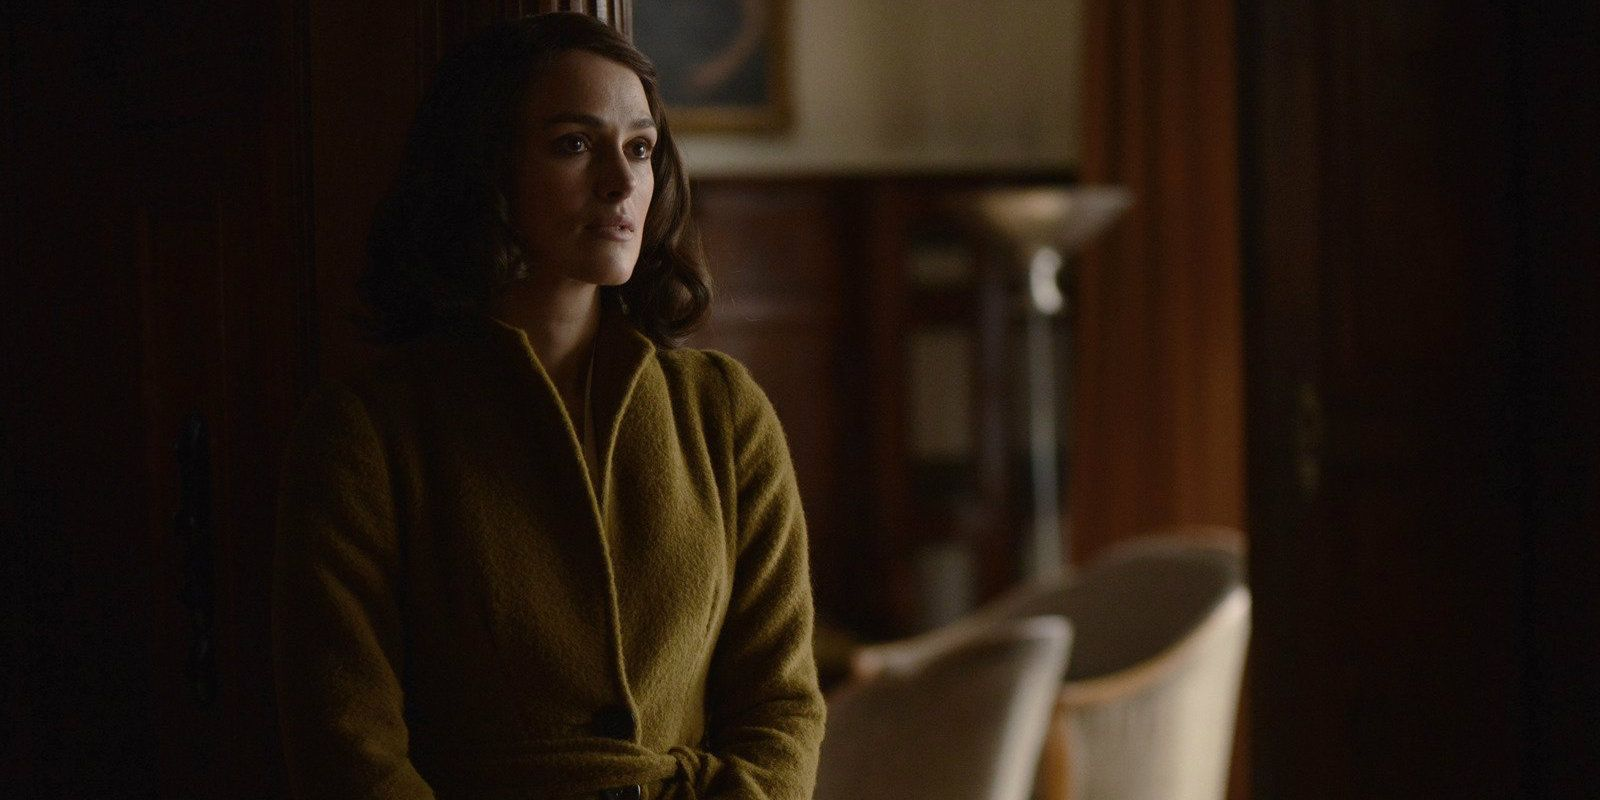 The Aftermath Trailer Teases Keira Knightley's Next Period Drama